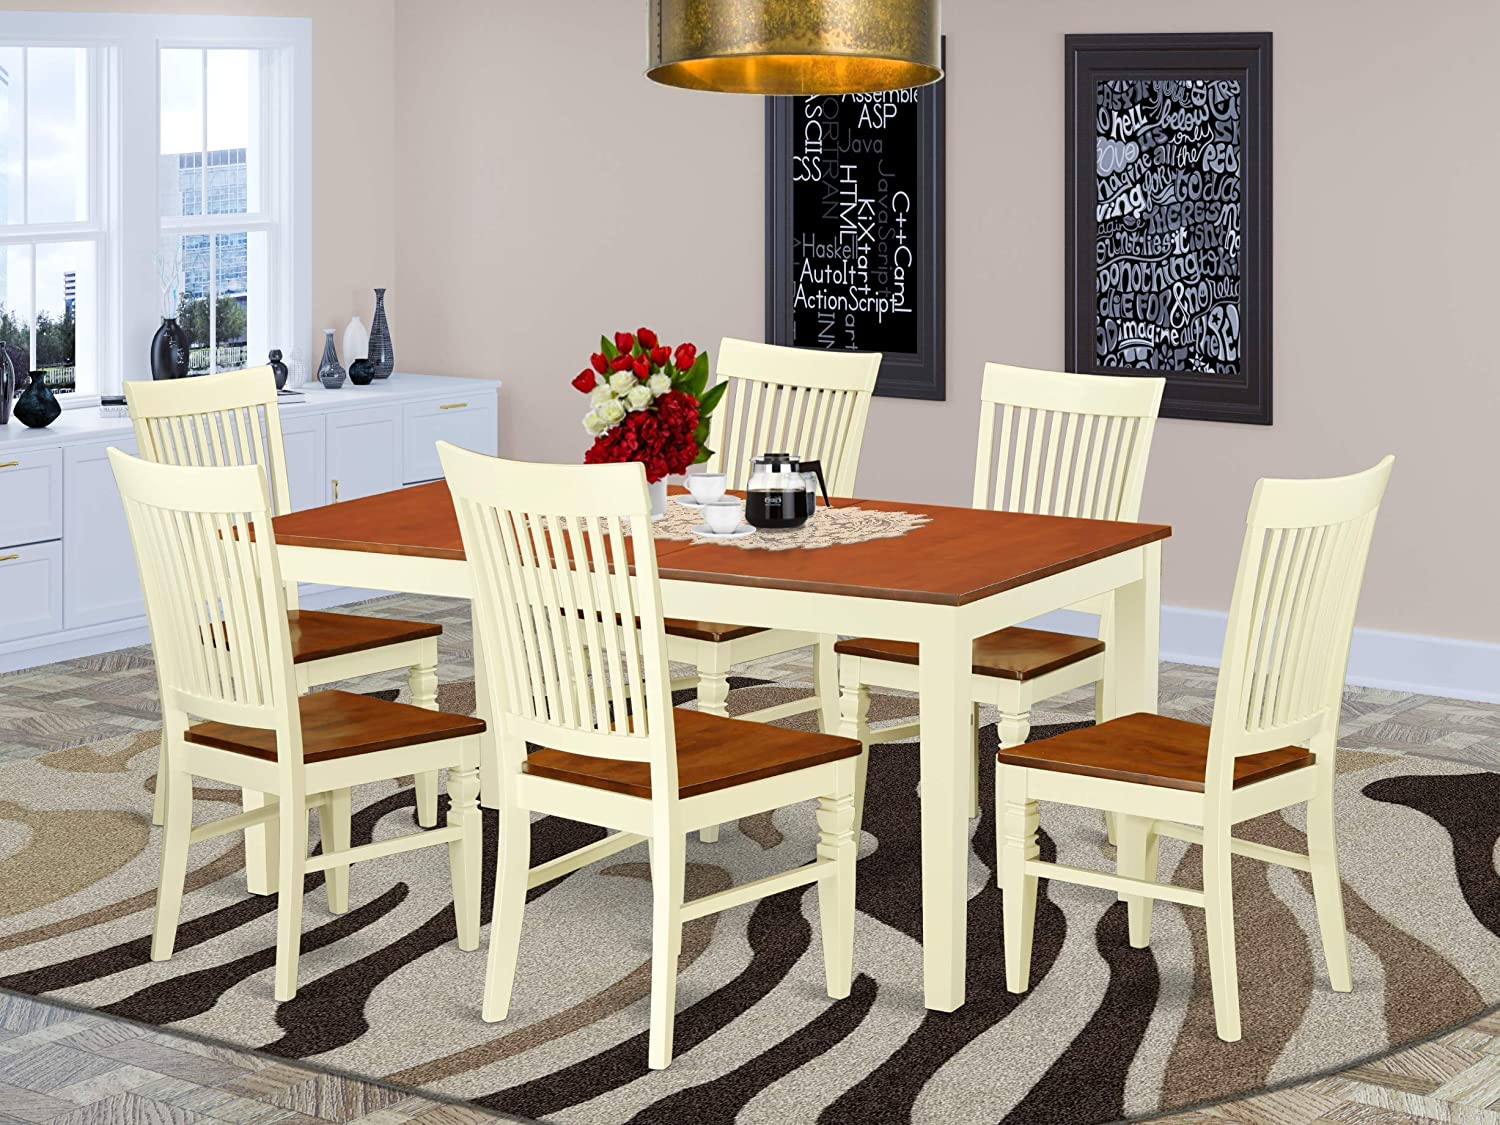 7 Pc Dinette set with a Dining Table and 6 Wood Seat Dining Chairs in Buttermilk and Cherry